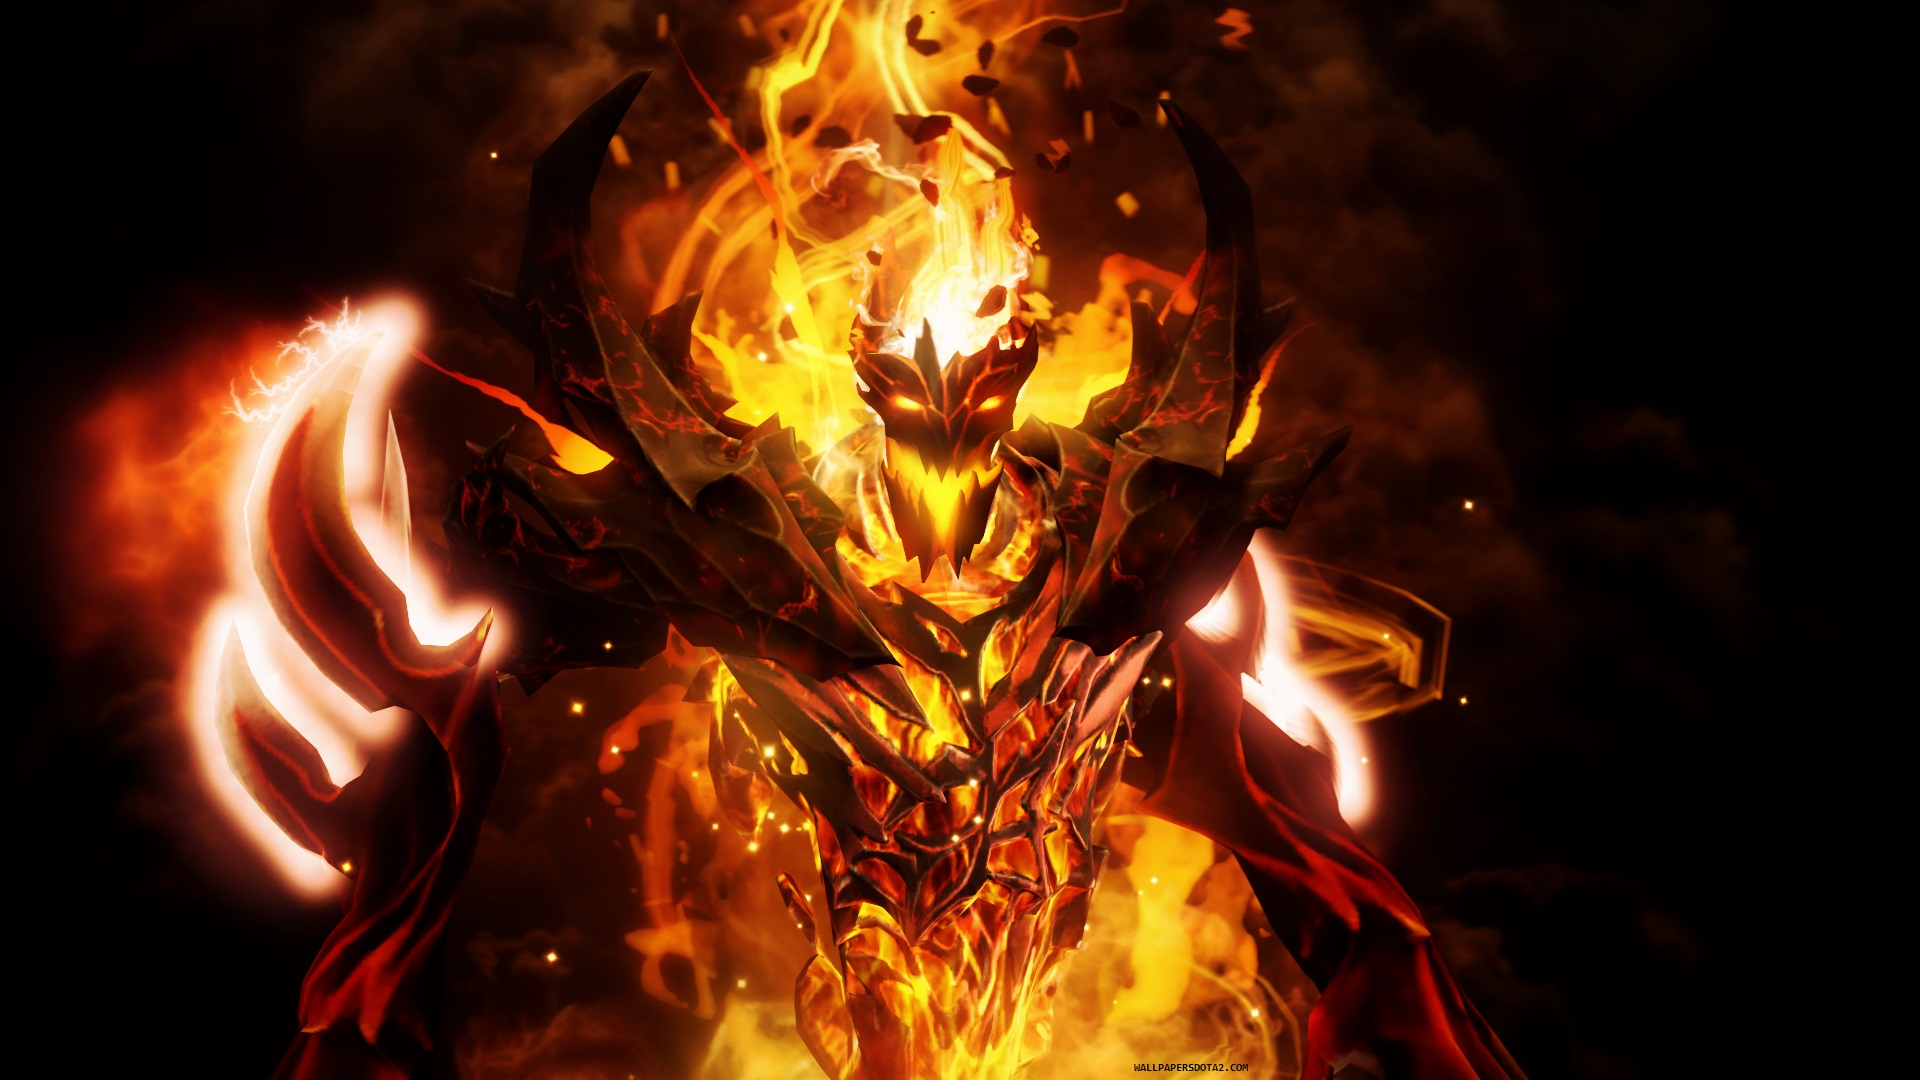 Shadow Fiend 3d Wallpapers Wallpapers Dota 2 Private Collection Background Image